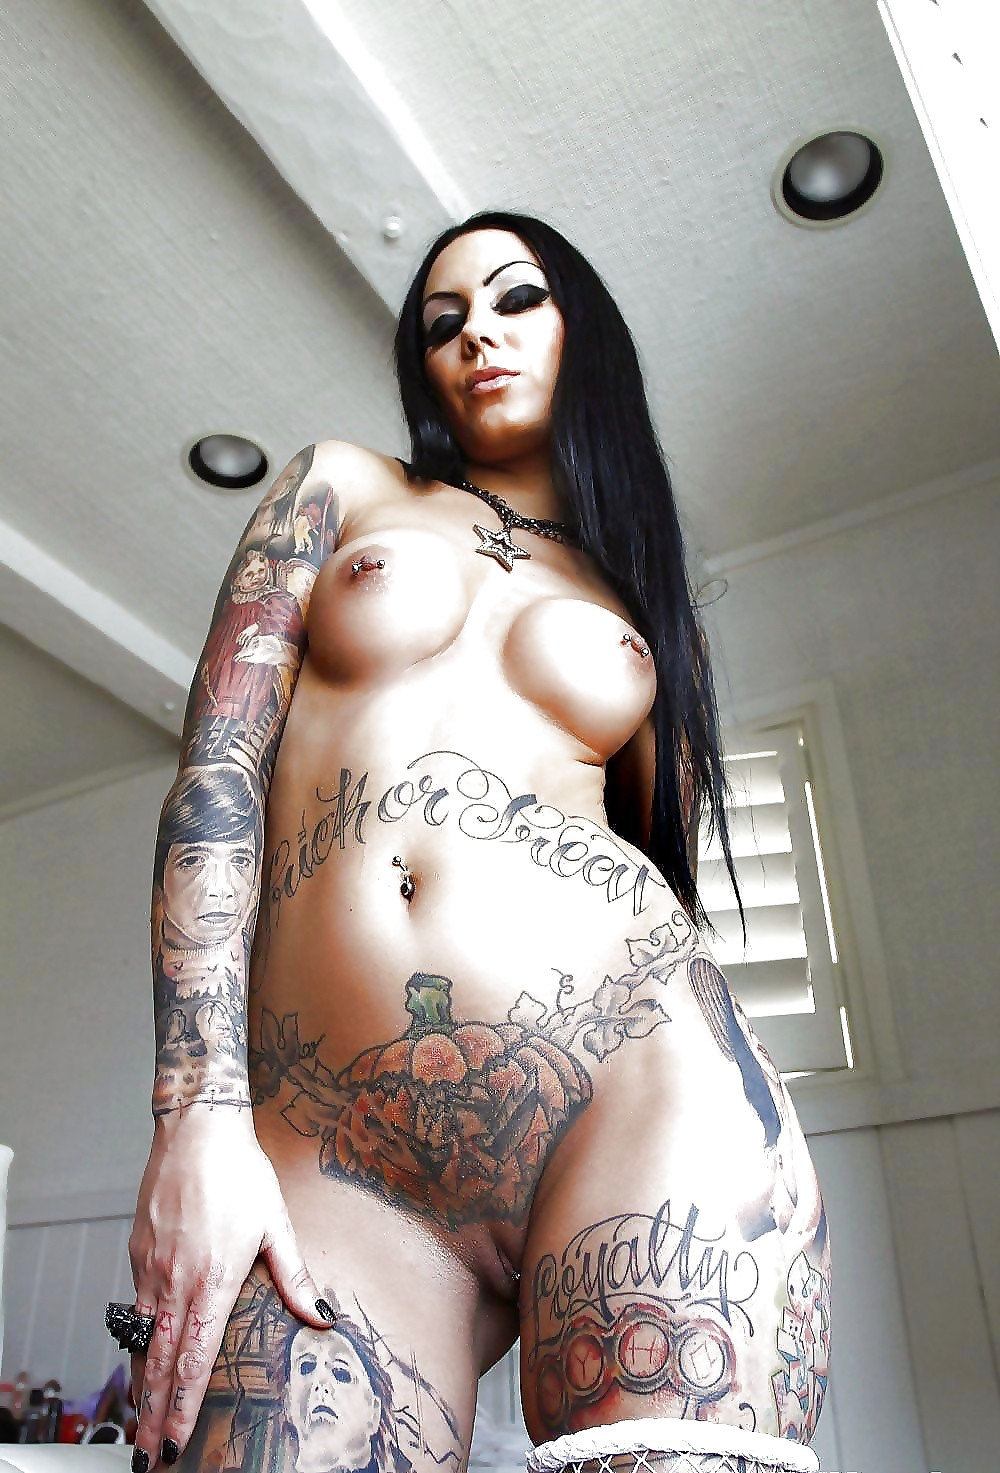 Hot girls with tattoos porn